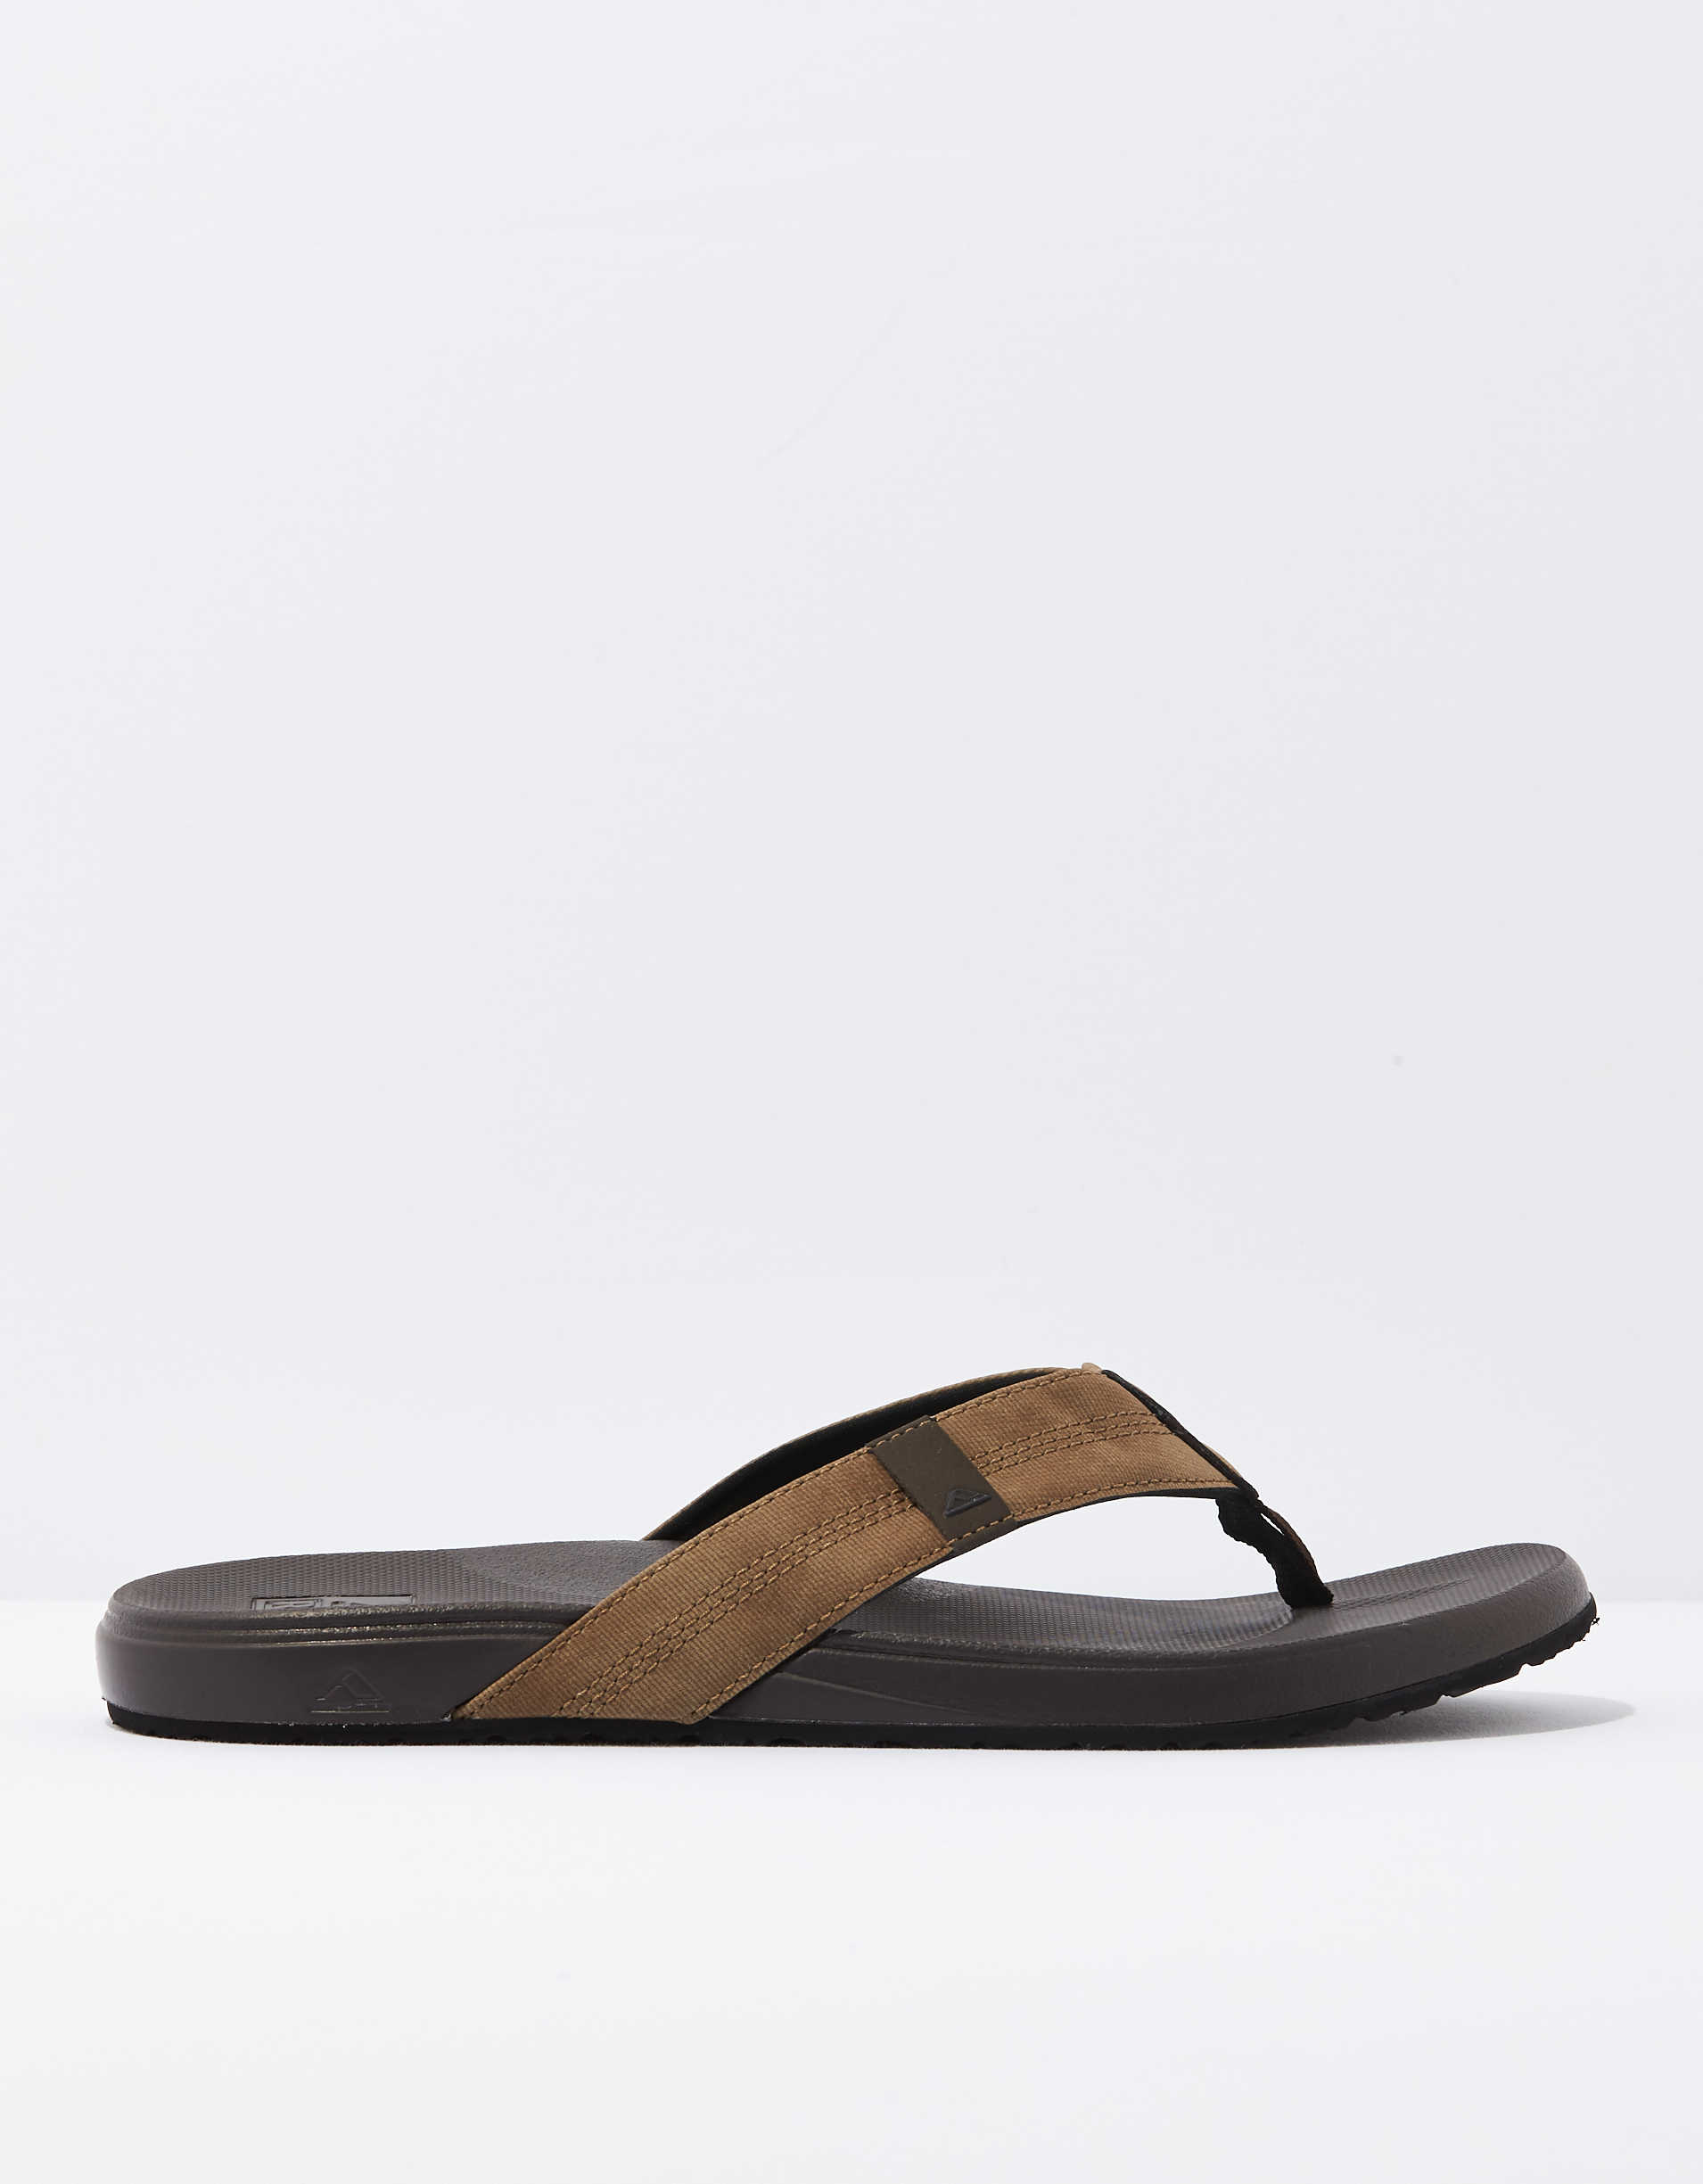 REEF Cushion Phantom Sandal